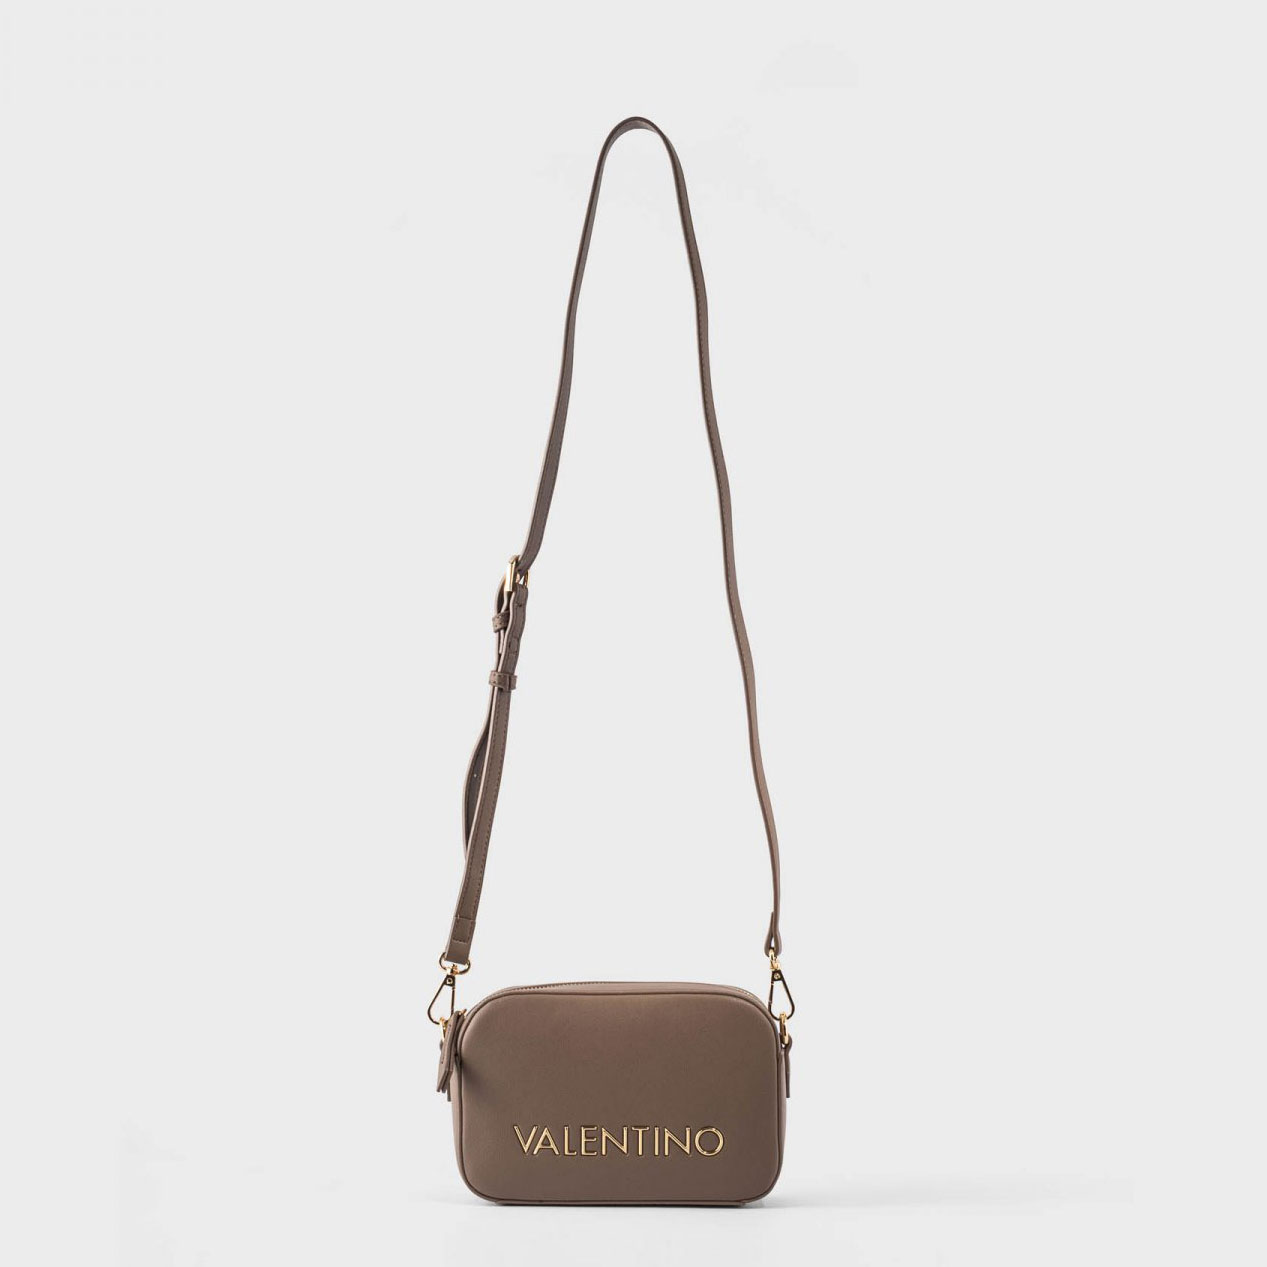 VALENTINO Marroquinería Bolso Olive Taupe VBS5JM05-TAUPE